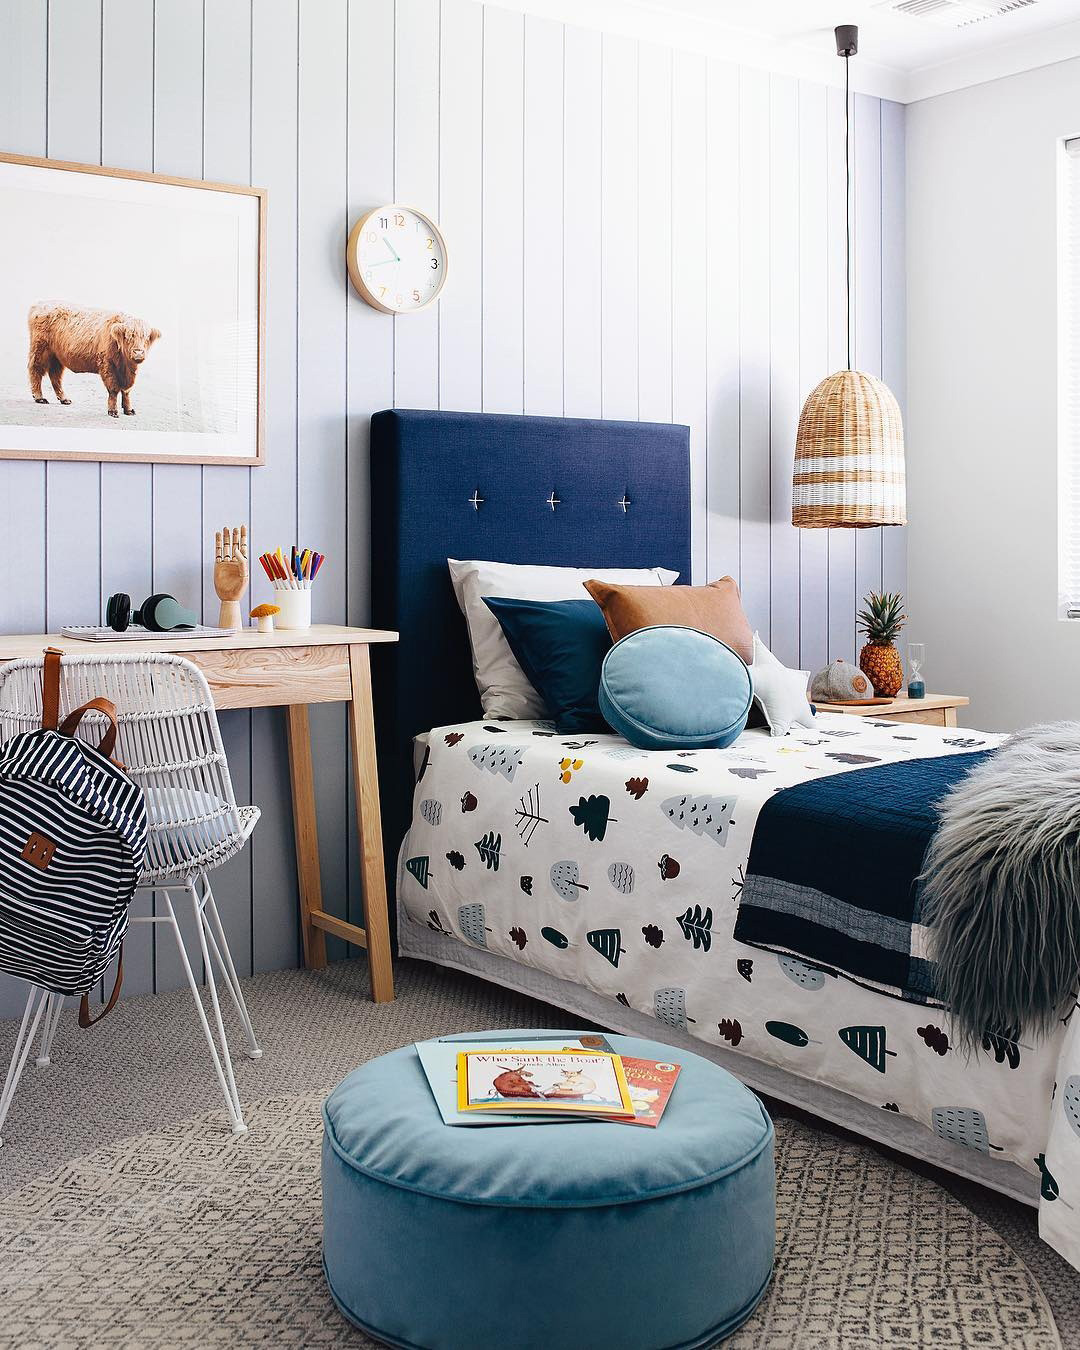 padded headboard for boy's bed